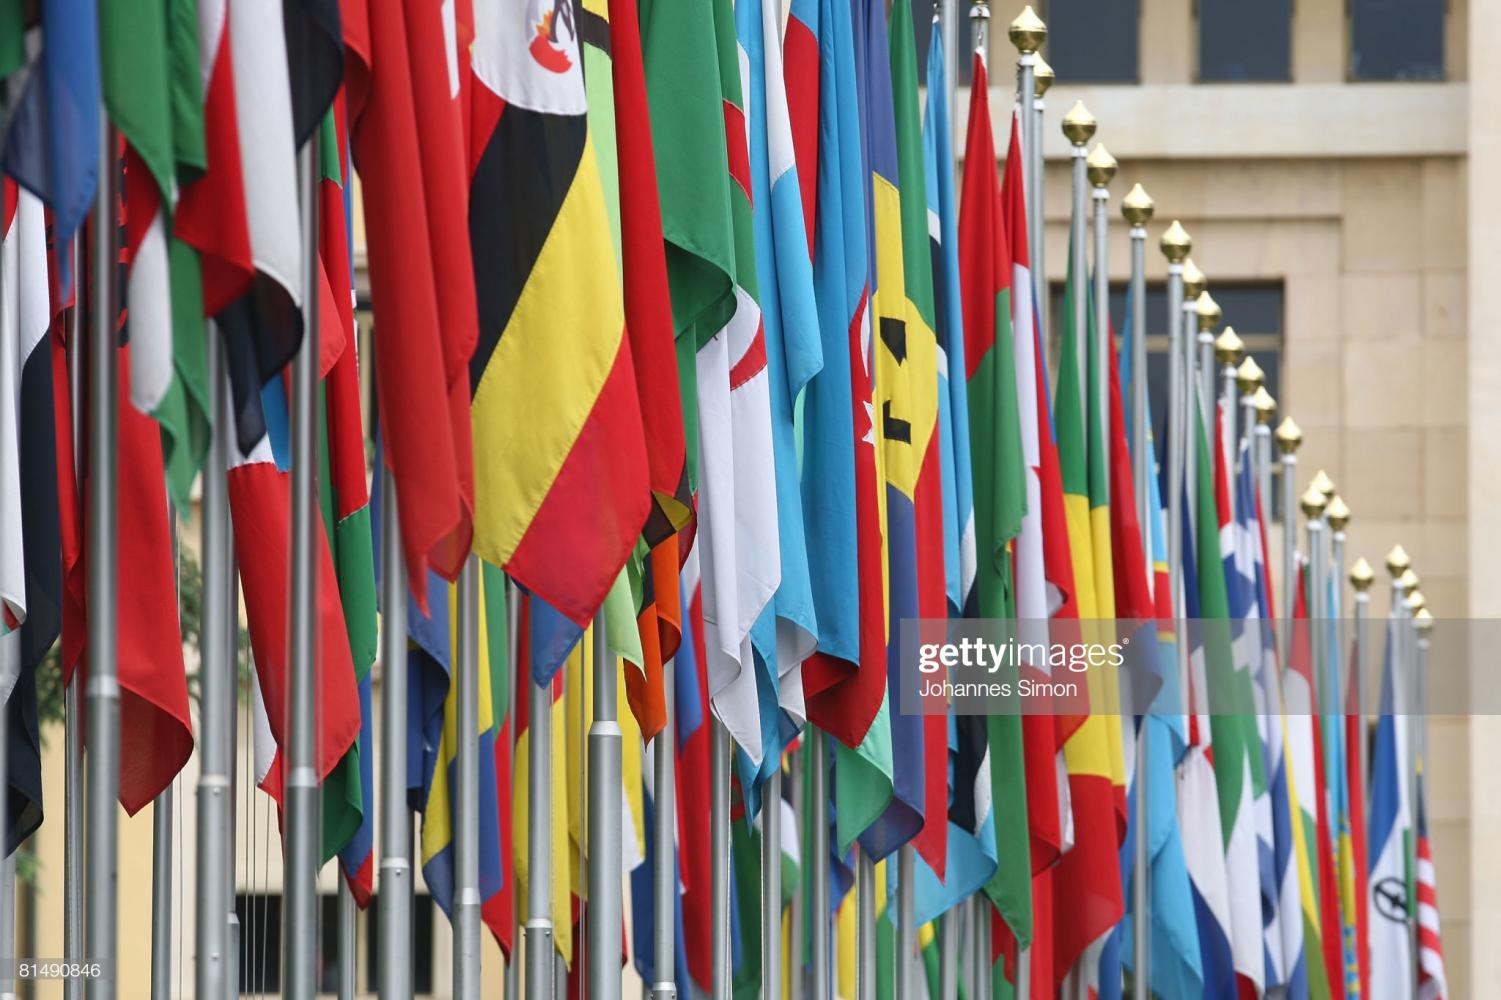 GENEVA - JUNE 08: Numerous national flags are seen in front of the United Nations Office (UNOG) on June 8, 2008 in Geneva, Switzerland. Housed at the Palais des Nations, the United Nations Office at Geneva serves as the representative office of the Secretary-General at Geneva. A focal point for multilateral diplomacy, UNOG services more than 8,000 meetings every year, making it one of the busiest conference centres in the world. With more than 1,600 staff, it is the biggest duty stations outside of United Nations headquarters in New York